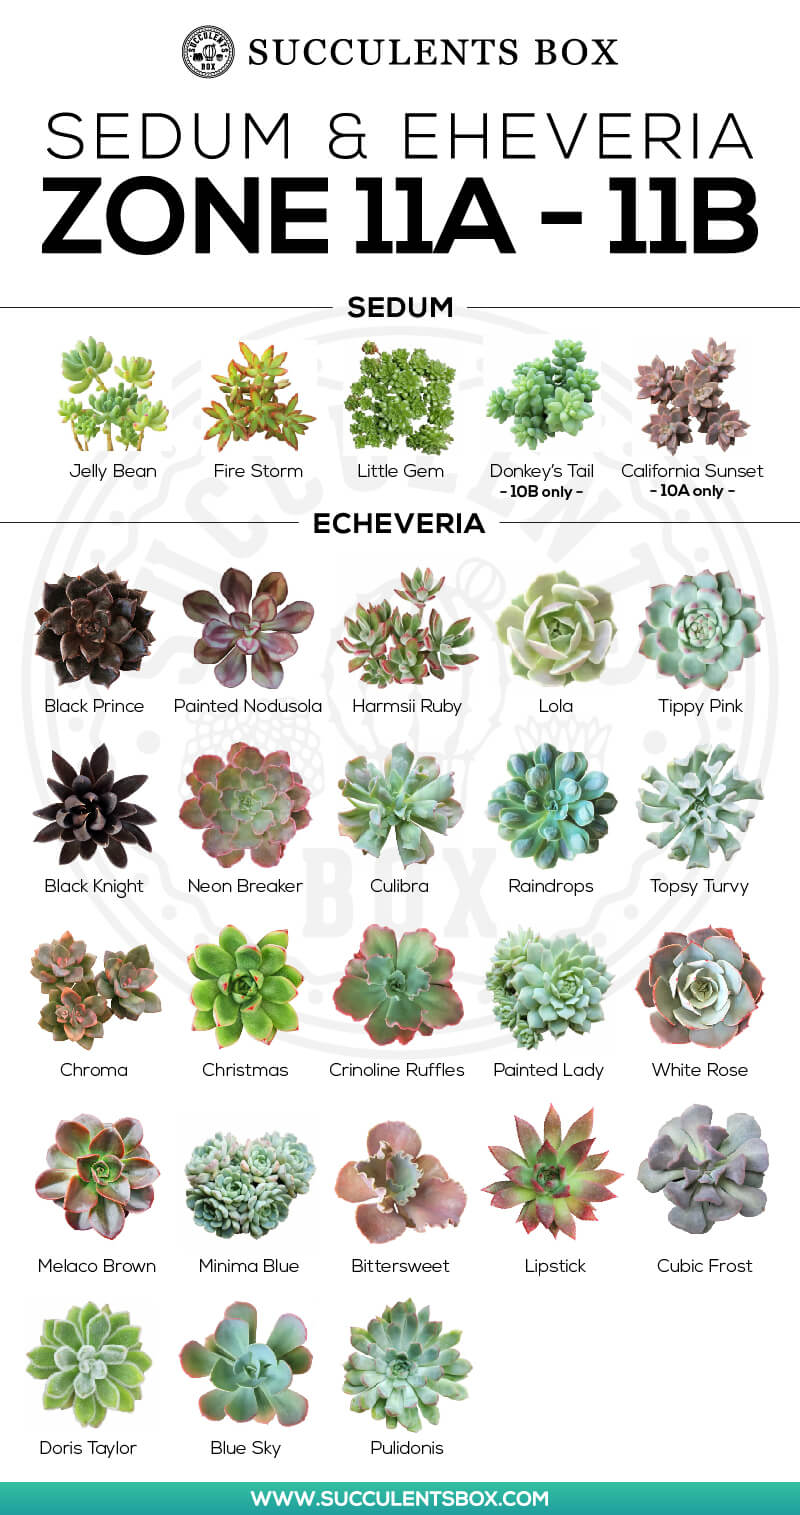 Succulents Plant for Zone 11